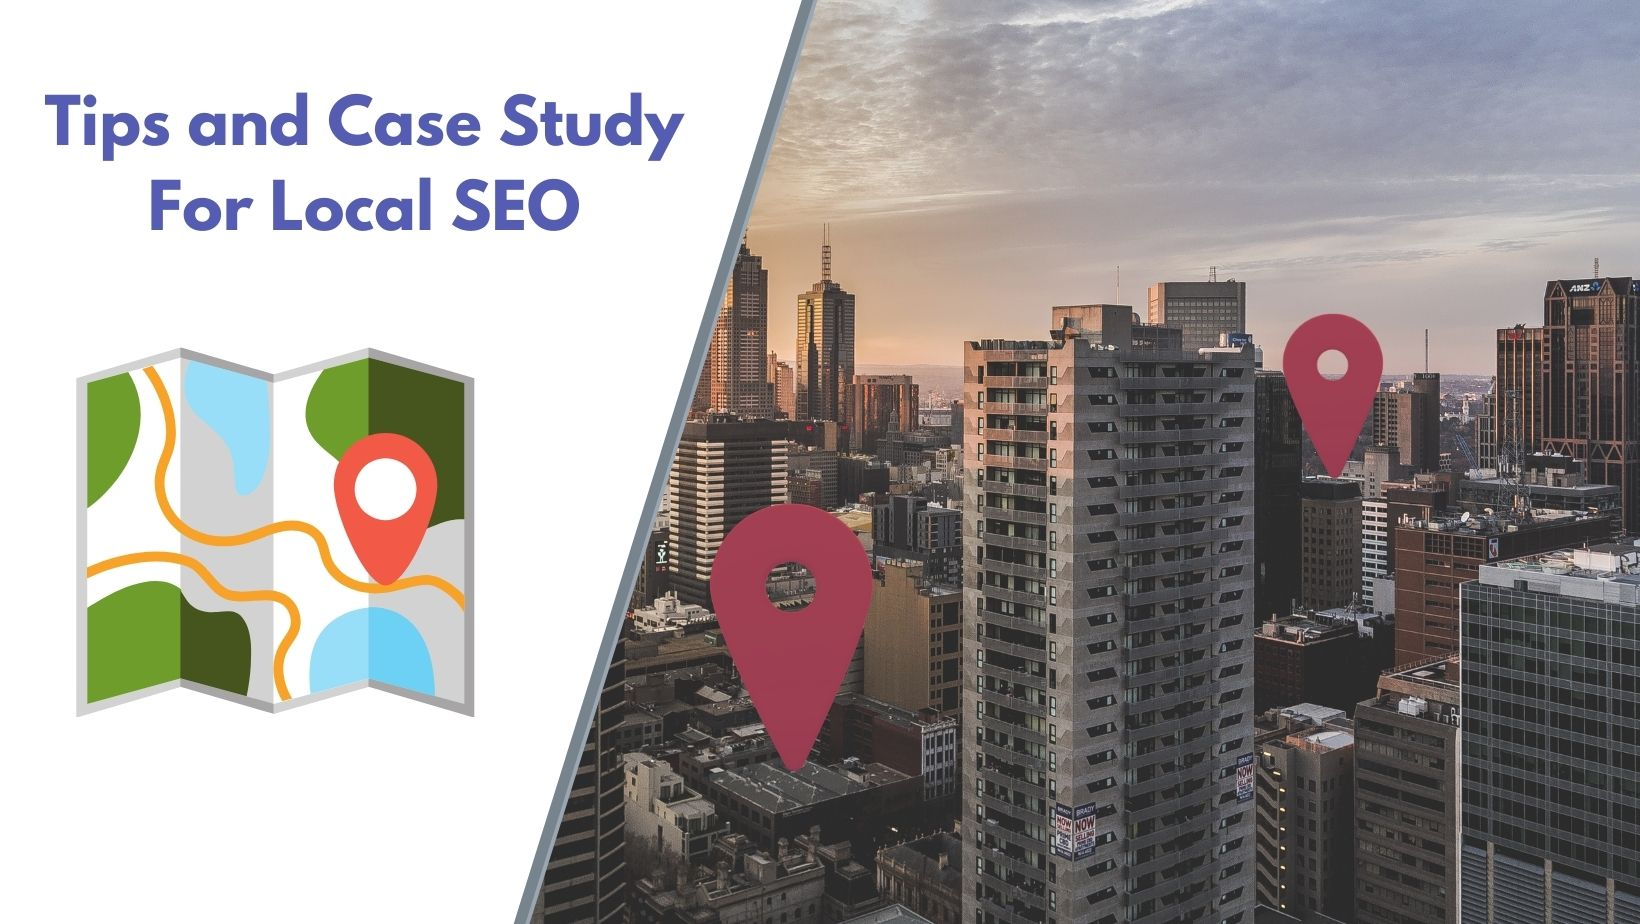 Top 10 local SEO tips for business growth in 2021